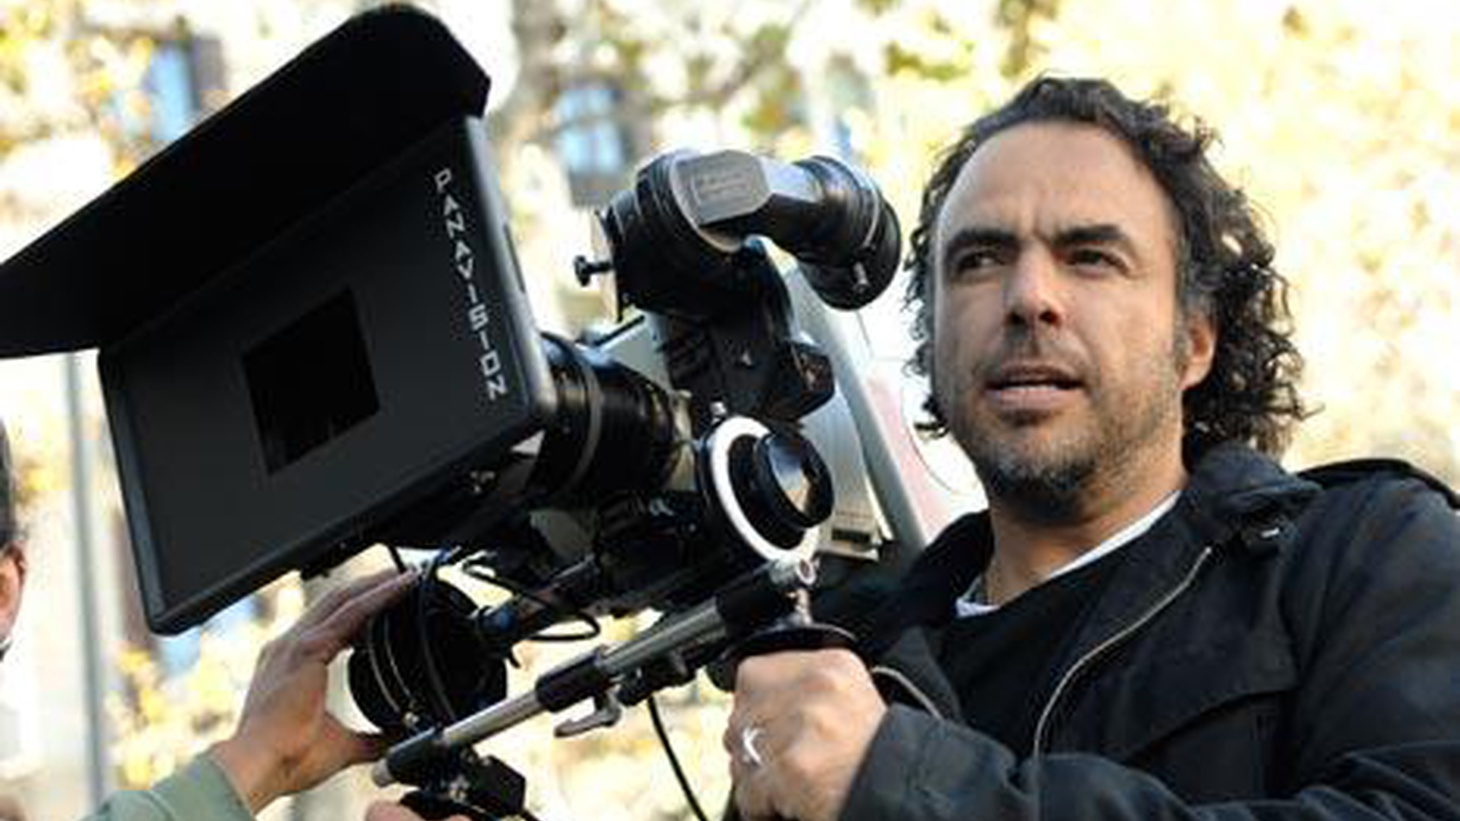 From Amores Perros to his newest film,  Biutiful, director Alejandro González Iñárritu (21 Grams, Babel) finds something new and fresh with each film. He tells us how.